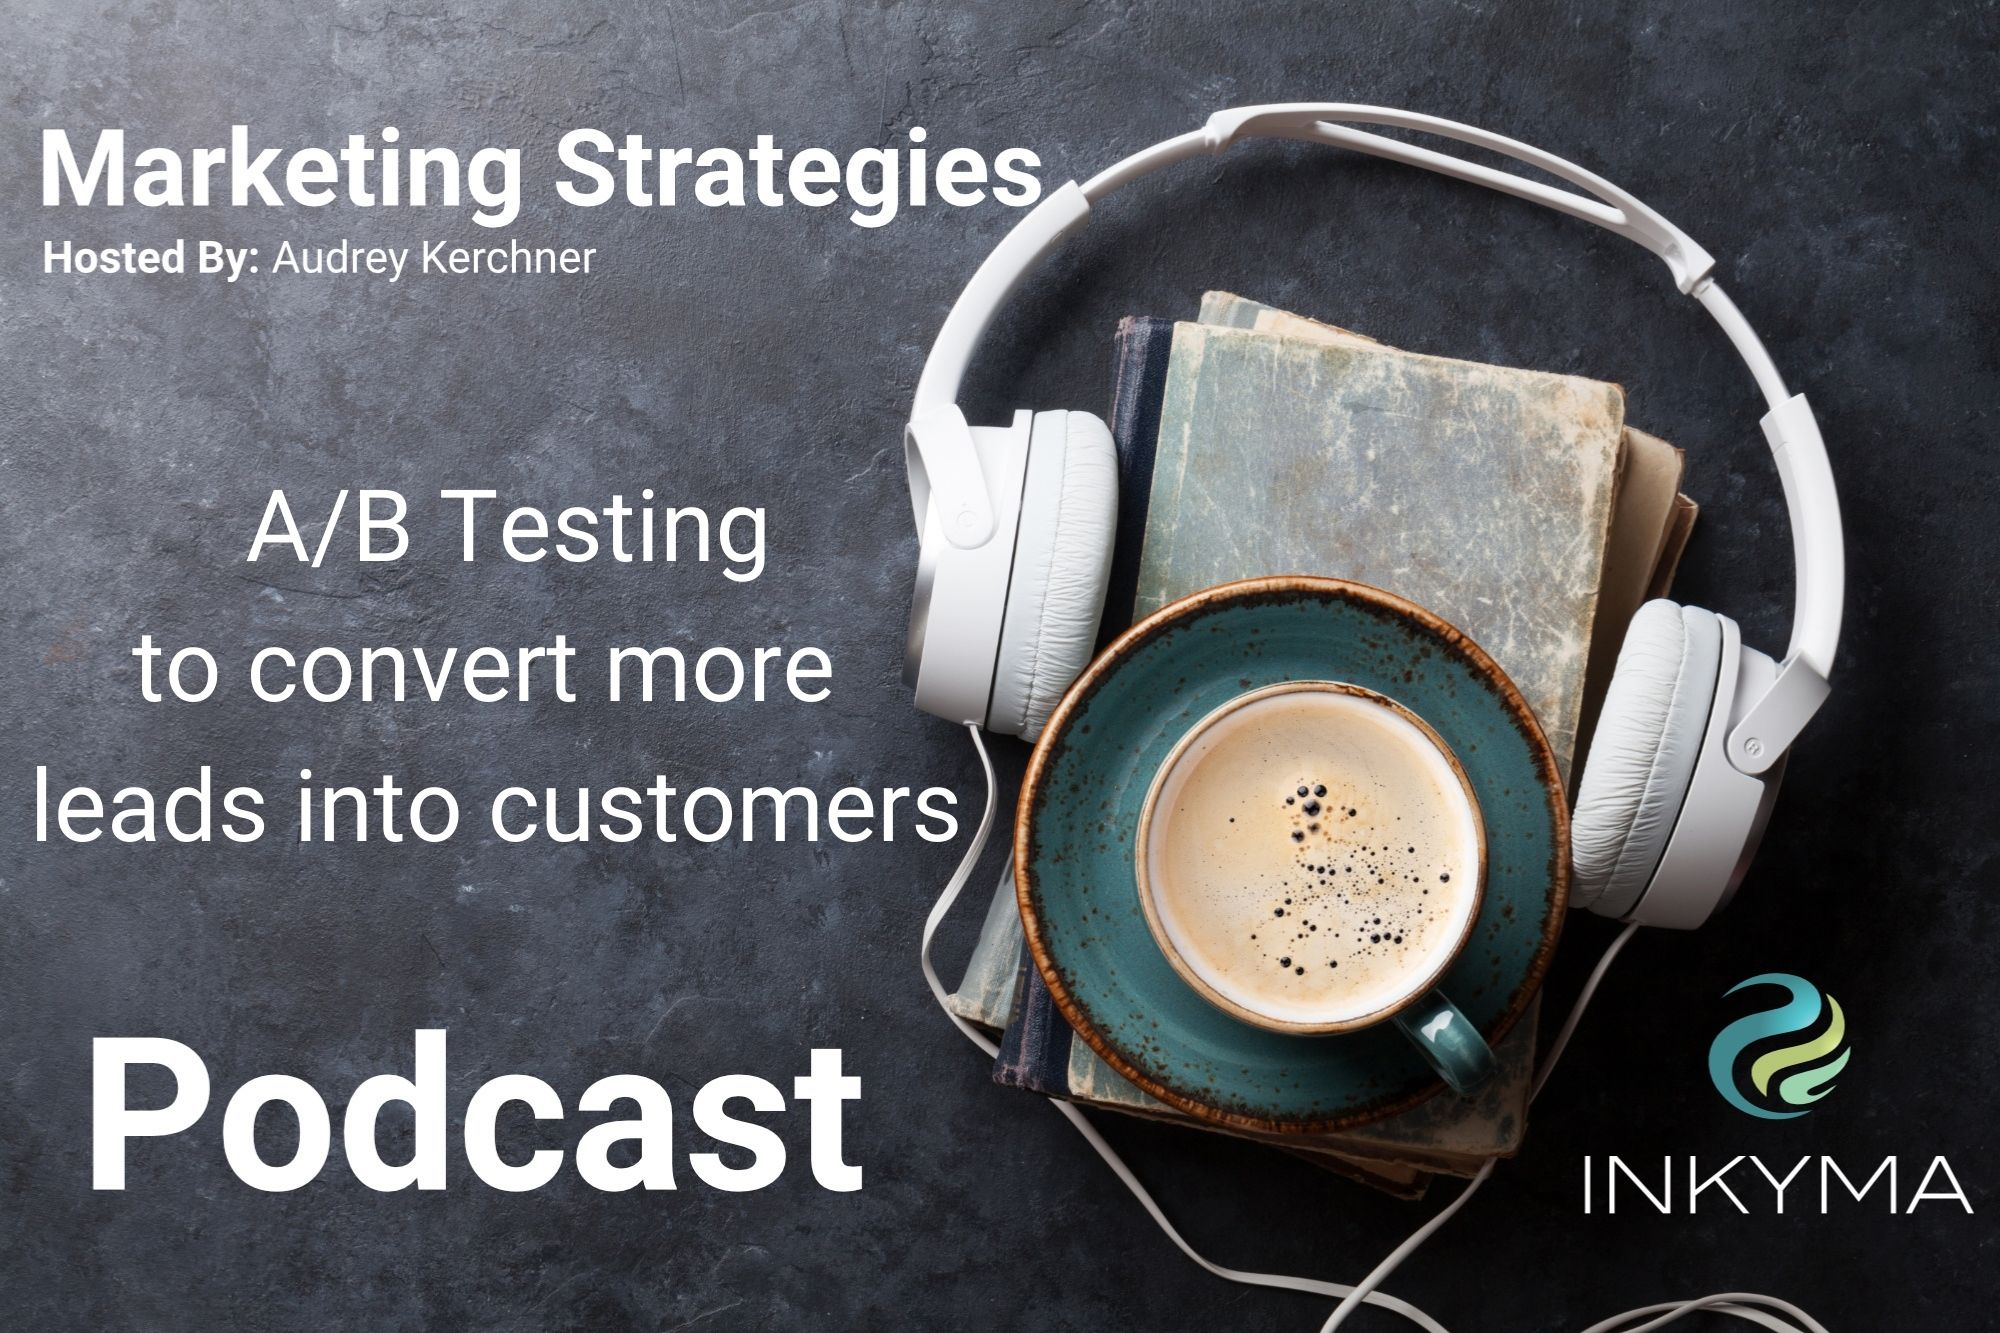 A/B Testing to convert more leads into customers